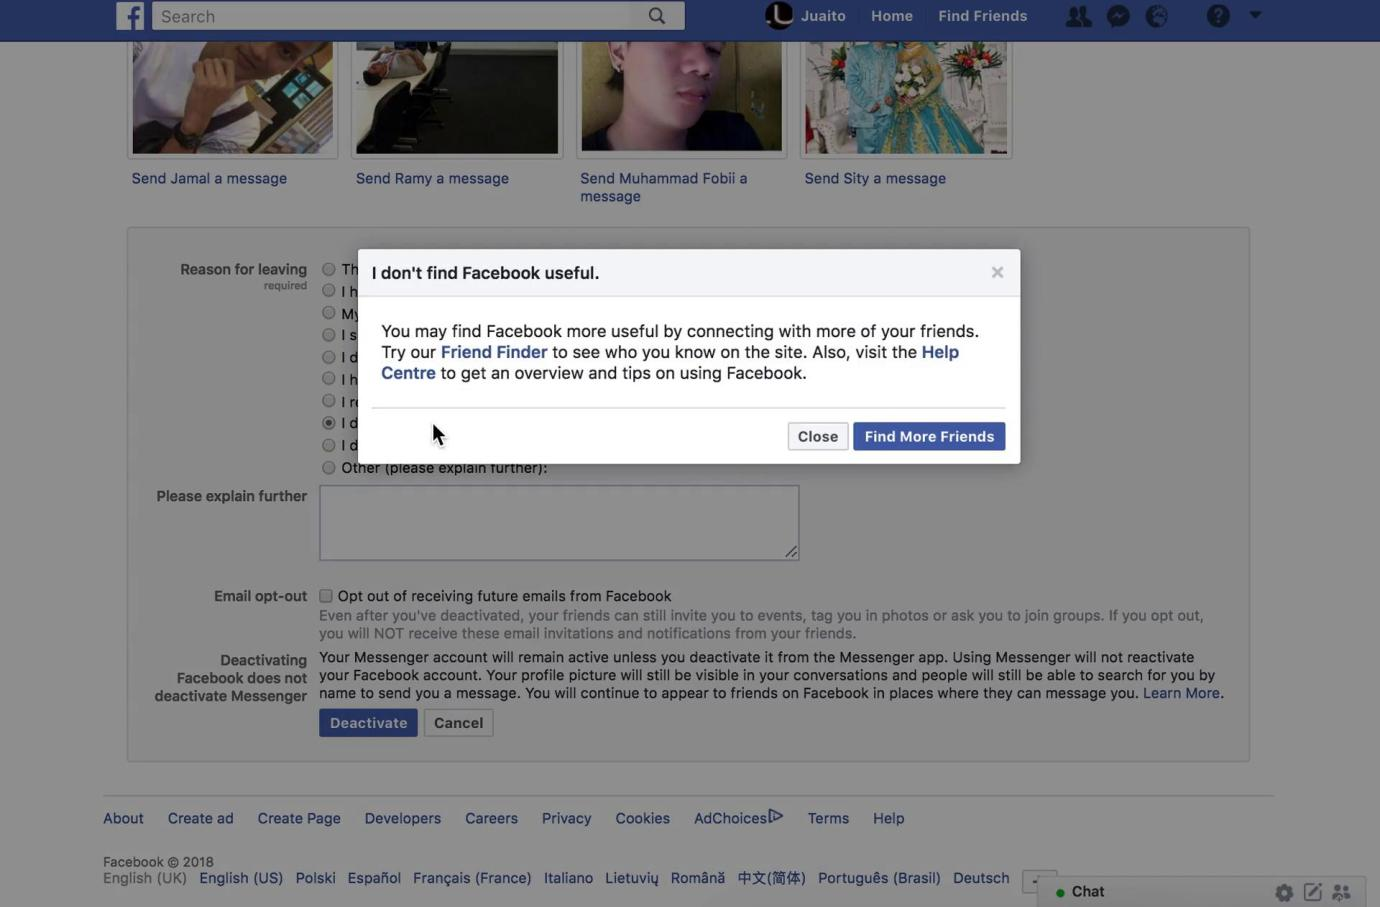 A modal showing a possible solution to our issue with Facebook that's causing us to deactivate